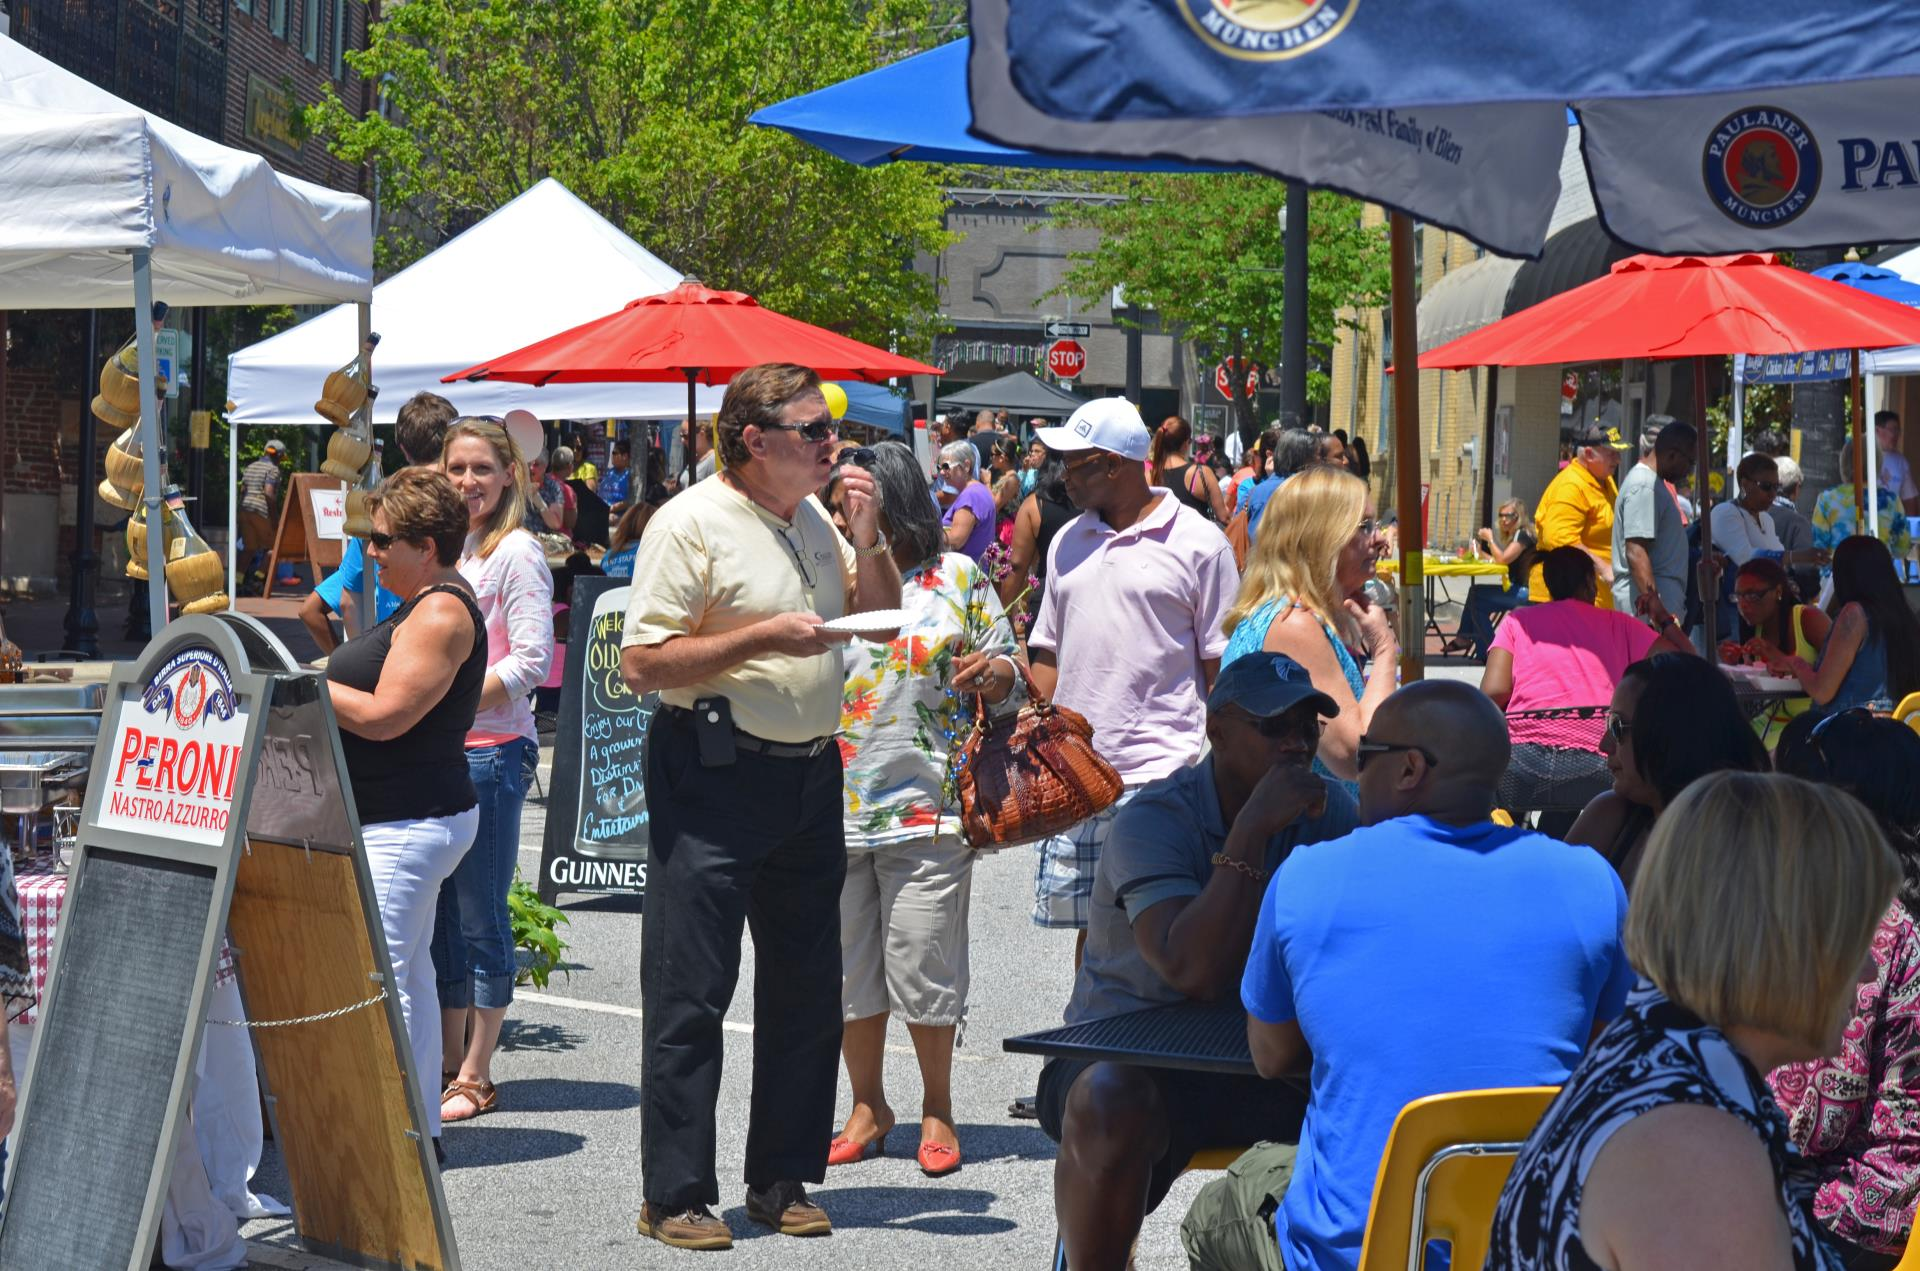 Taste of Conyers Georgia 2015 crowd shot